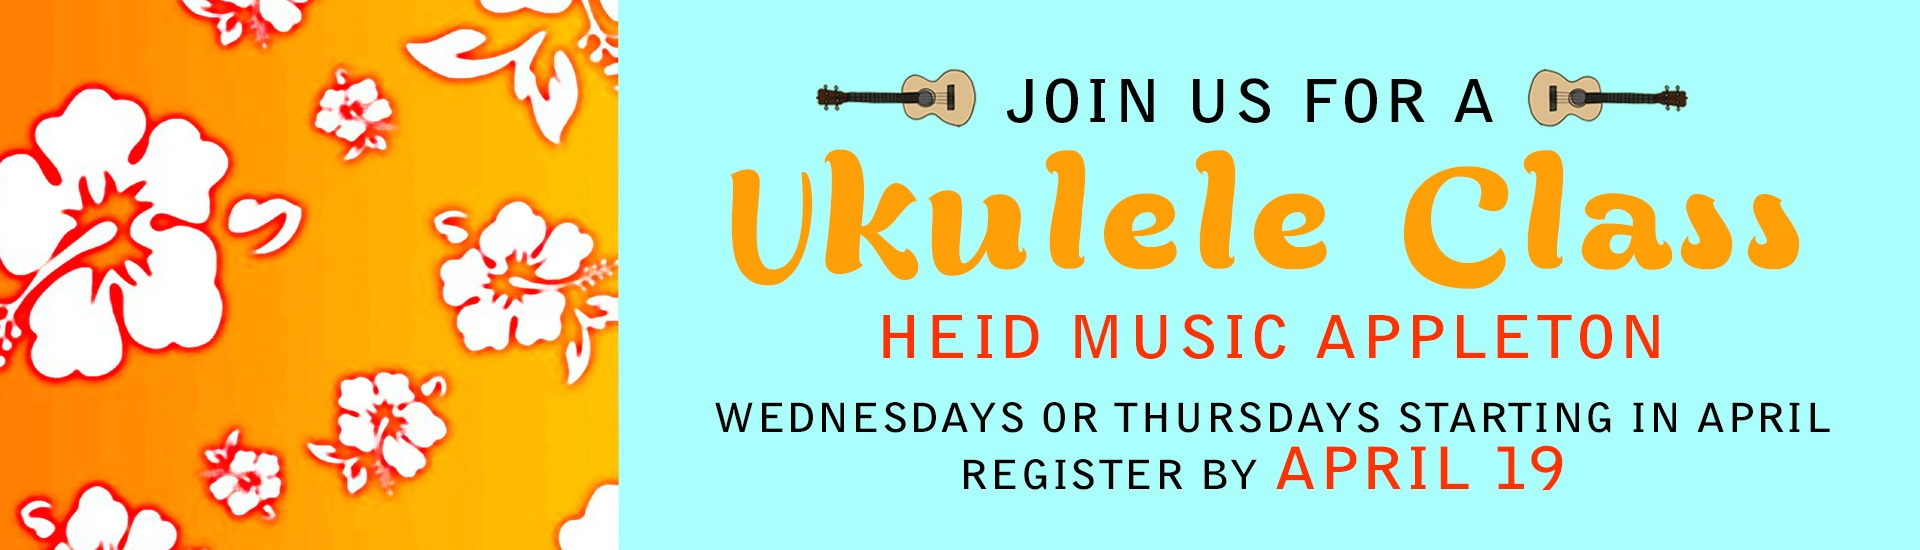 learn to play the ukulele in a fun group setting